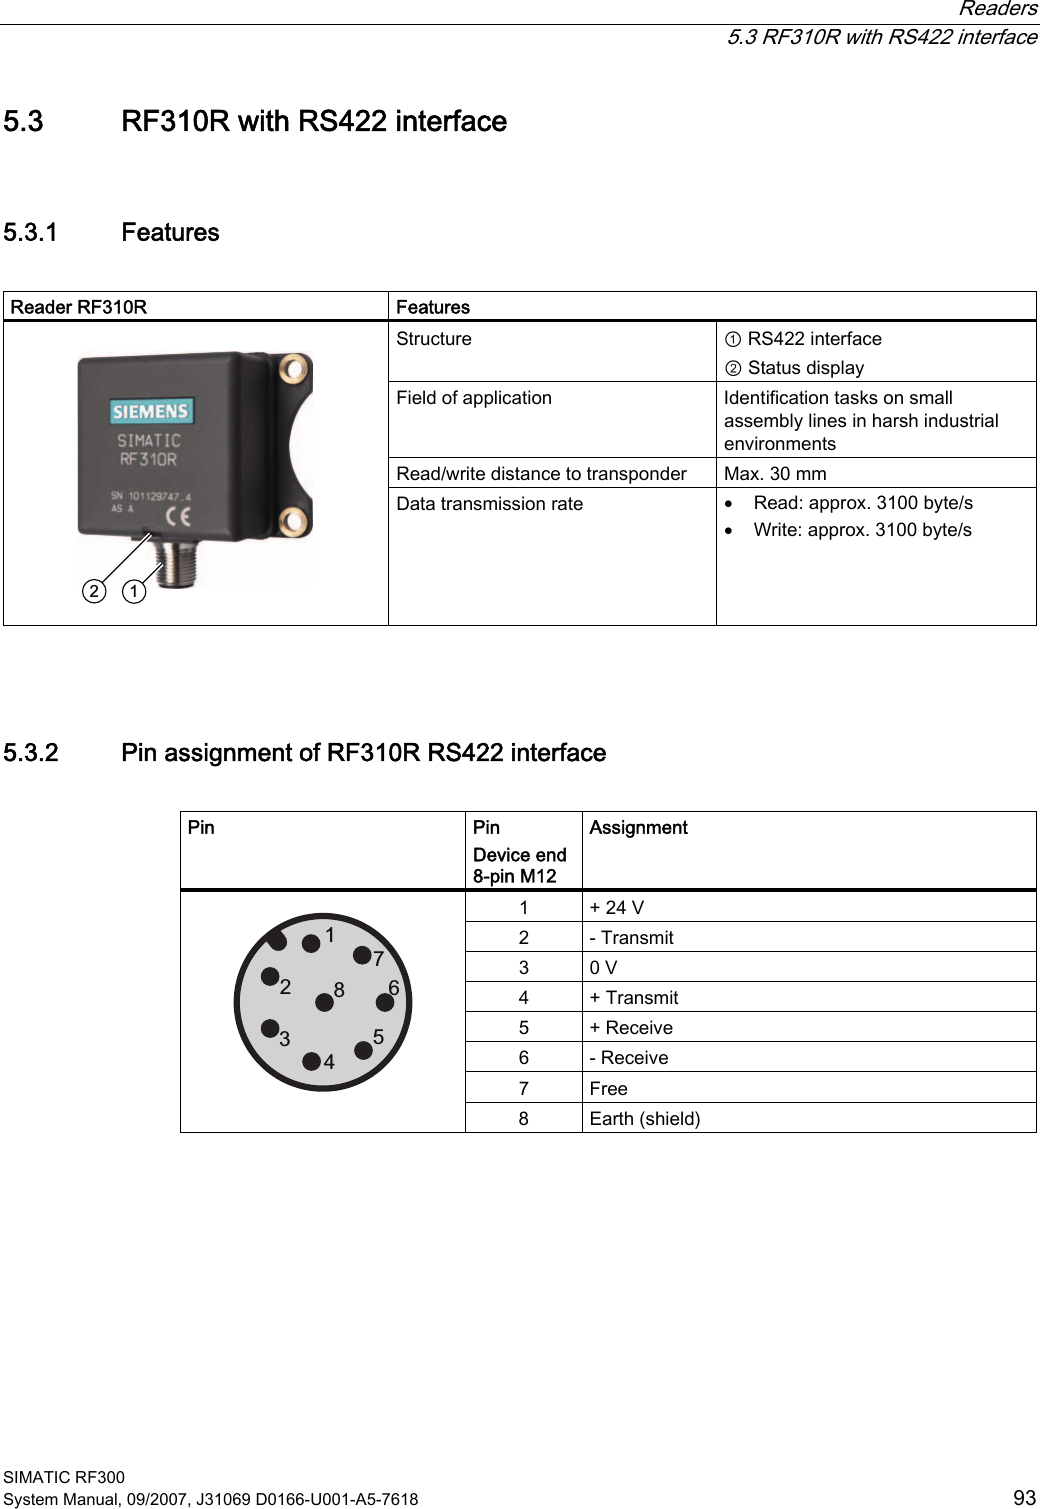 Siemens RF380R Tag Reader User Manual SIMATIC Sensors RFID